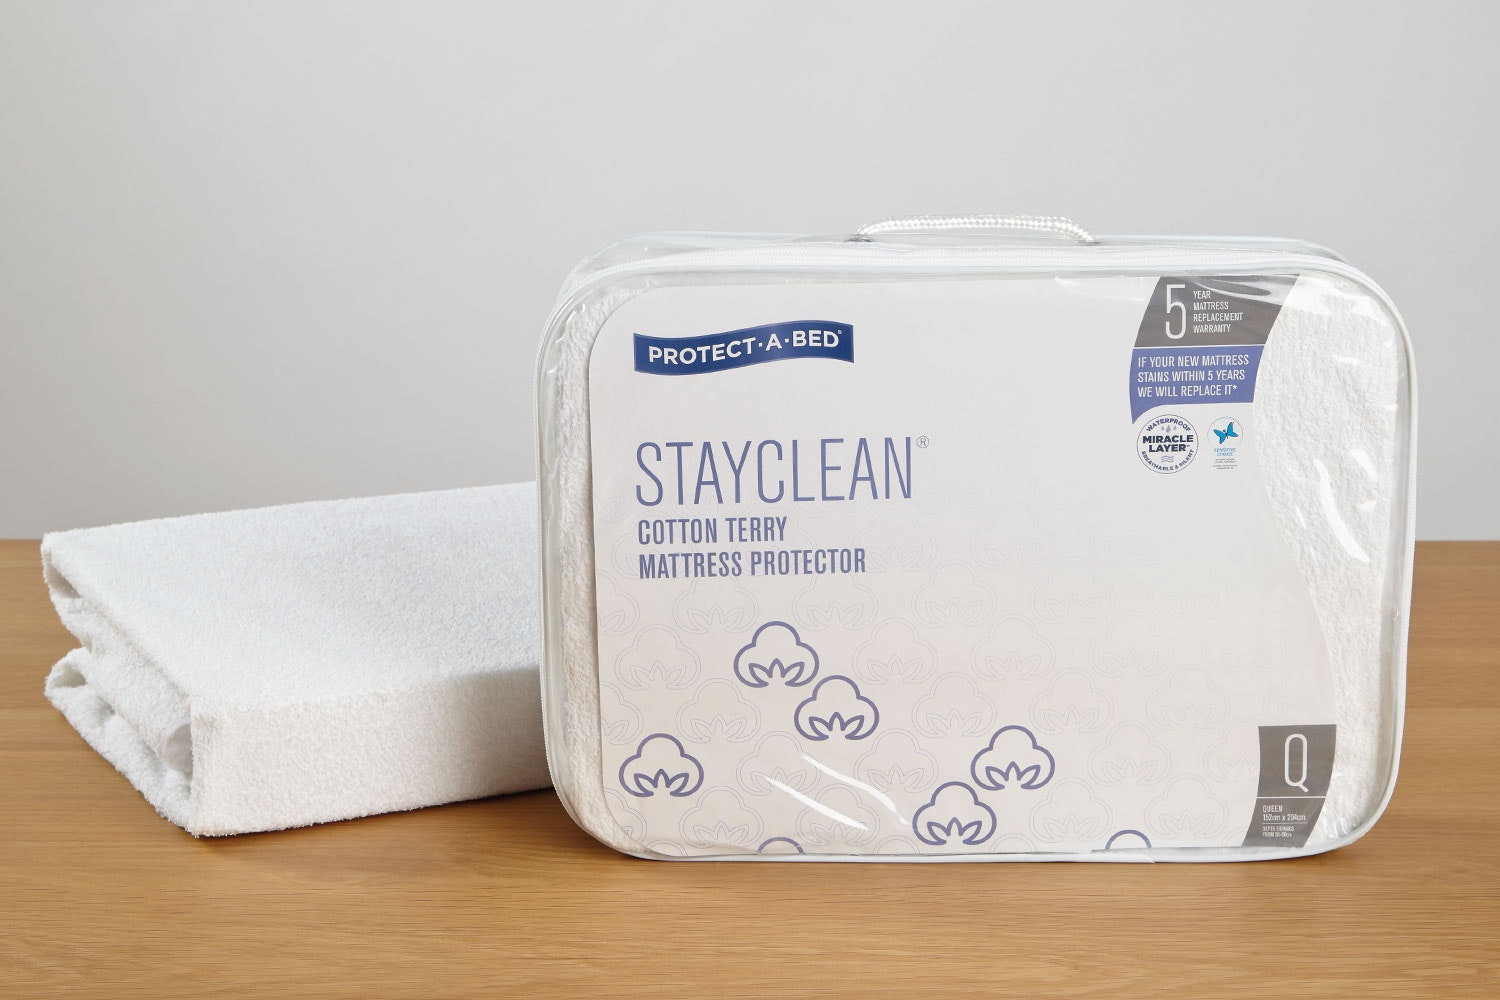 Stayclean Mattress Protector By Protect A Bed Harvey Norman New Zealand